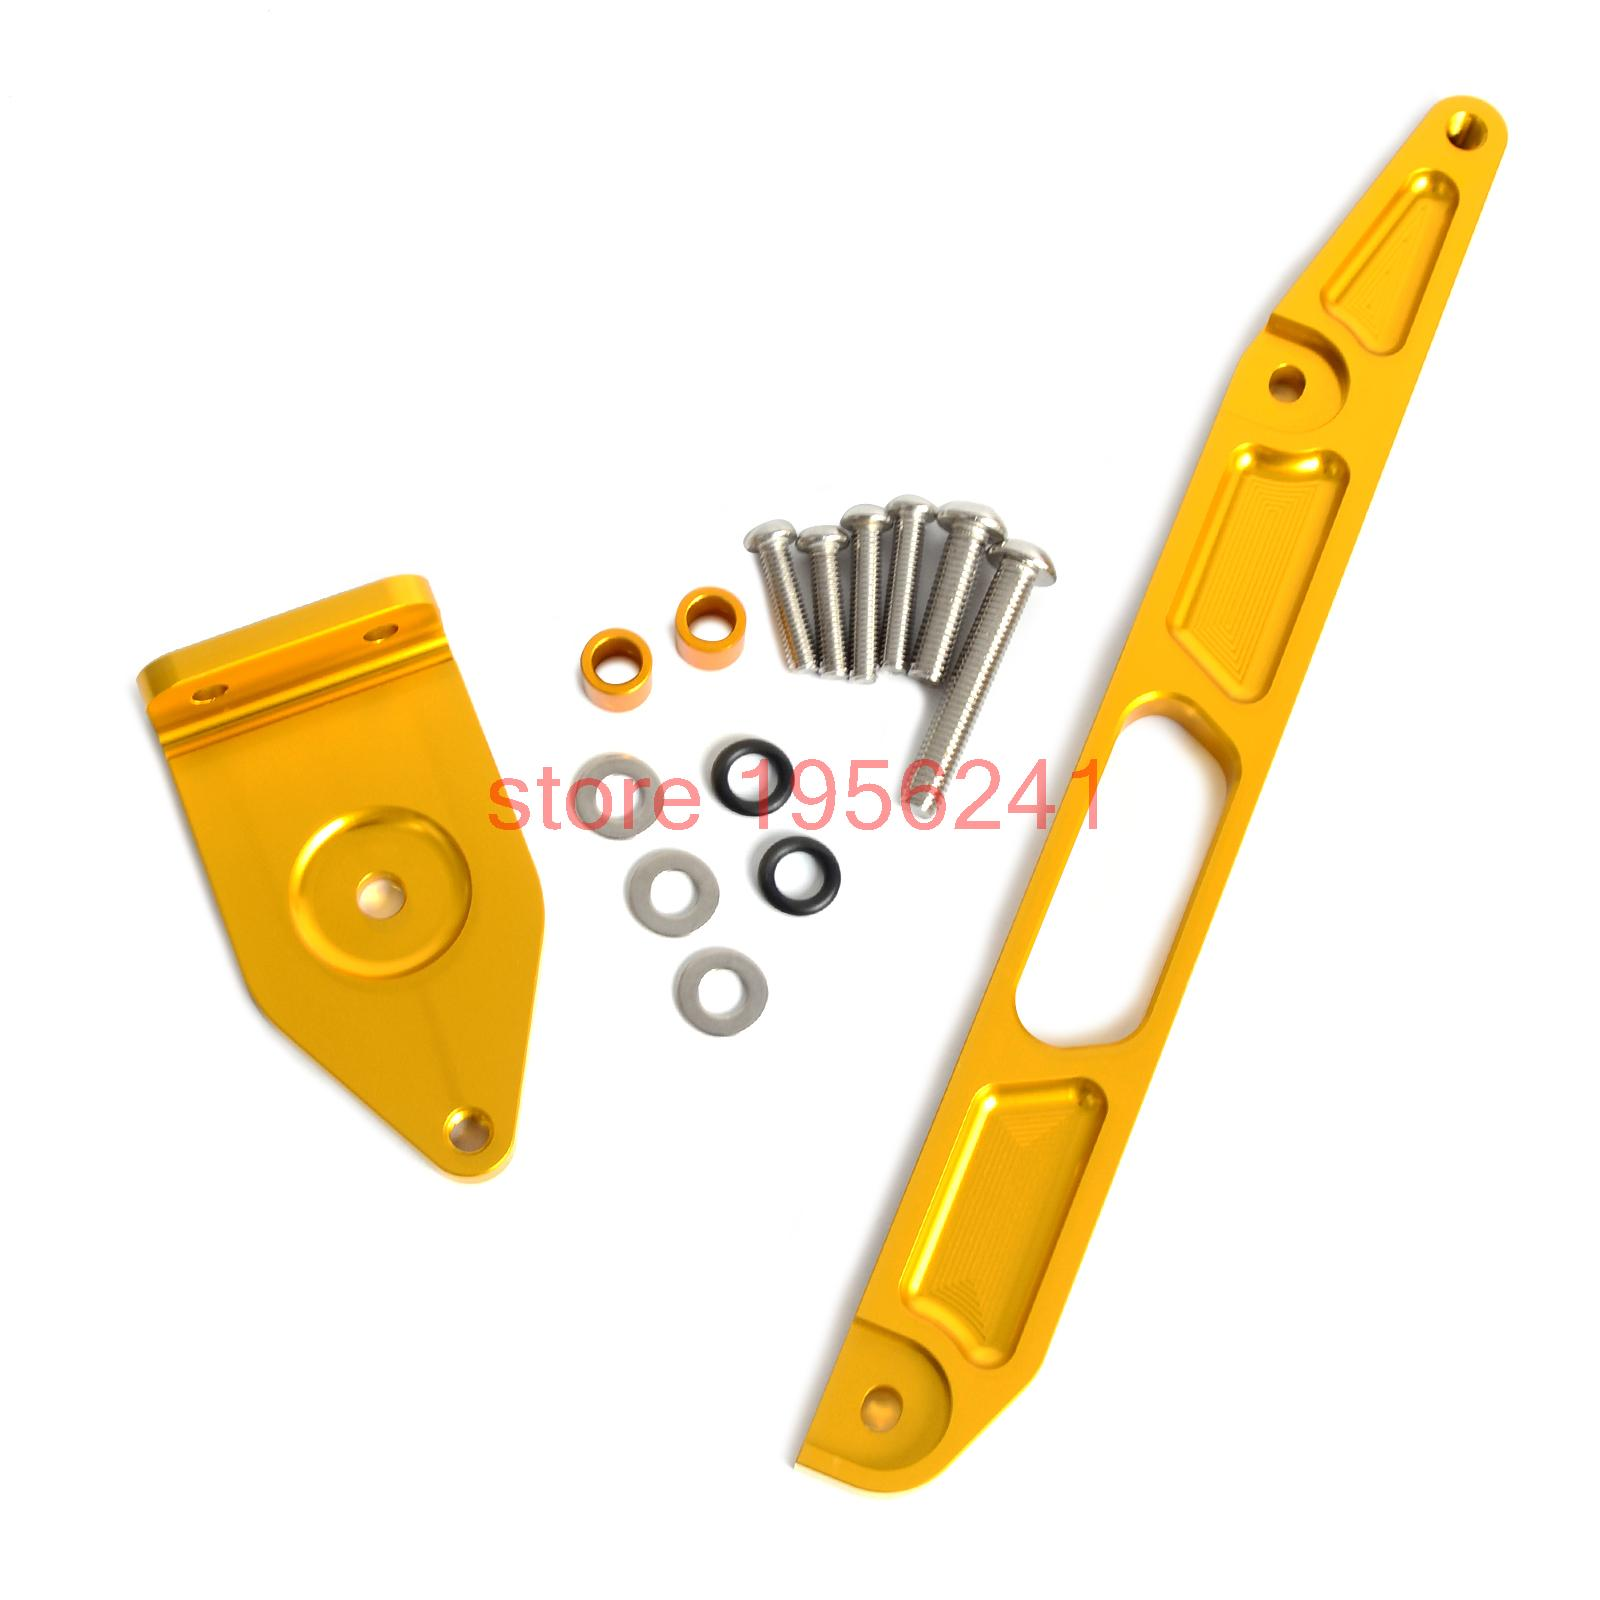 Gold CNC Mounting Kit Bracket for Yamaha XJR1300 2002 - 2015 2004 2005 2006 2008 2010 2013 2014 и другие кузнецова людмила викторовна бунимович евгений абрамович математика 6 кл арифметика геометрия тетрадь тренажер бунимович е а